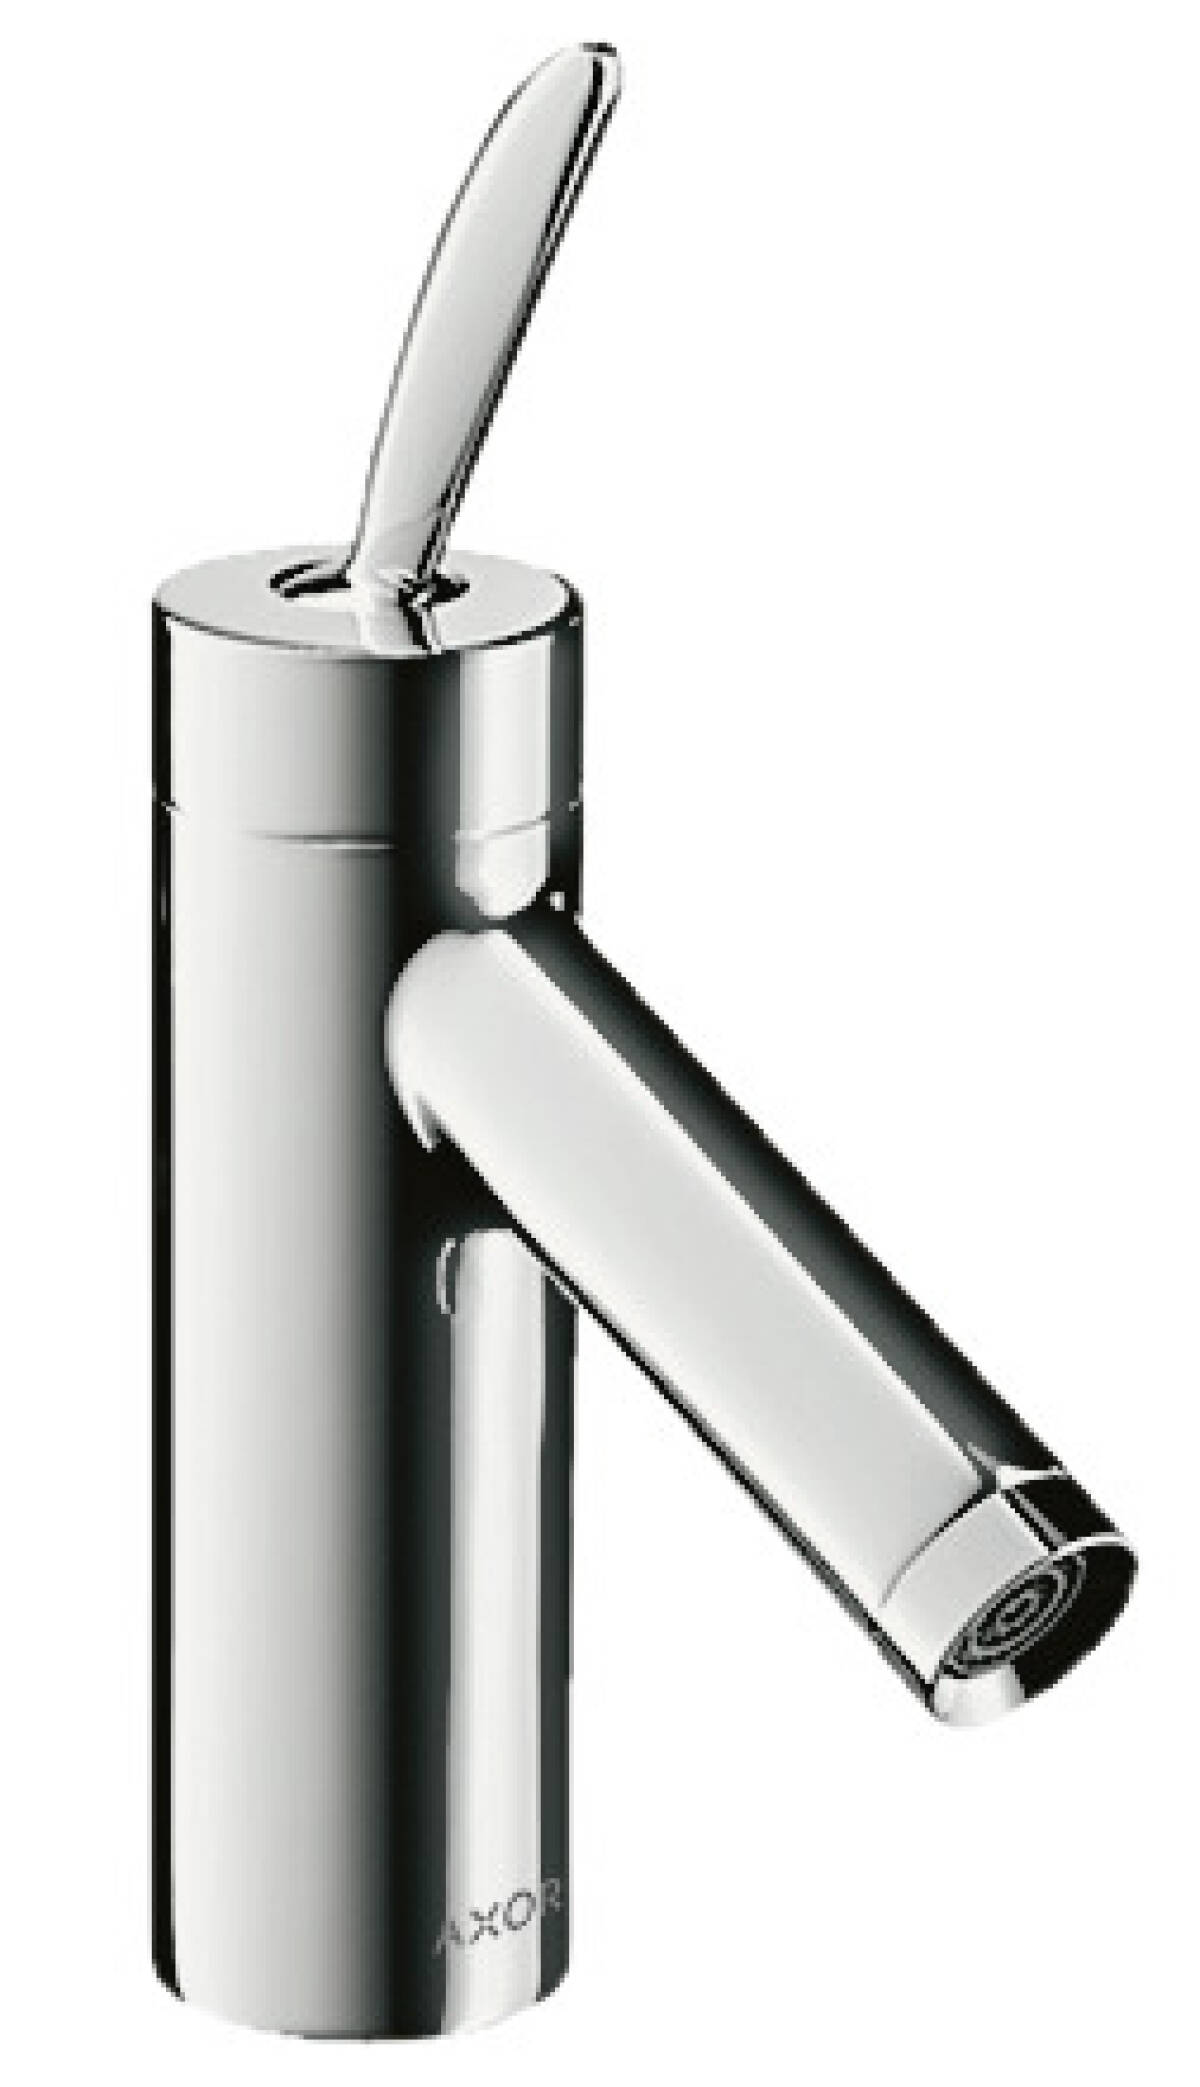 Single lever basin mixer 70 with pop-up waste set, Stainless Steel Optic, 10010800